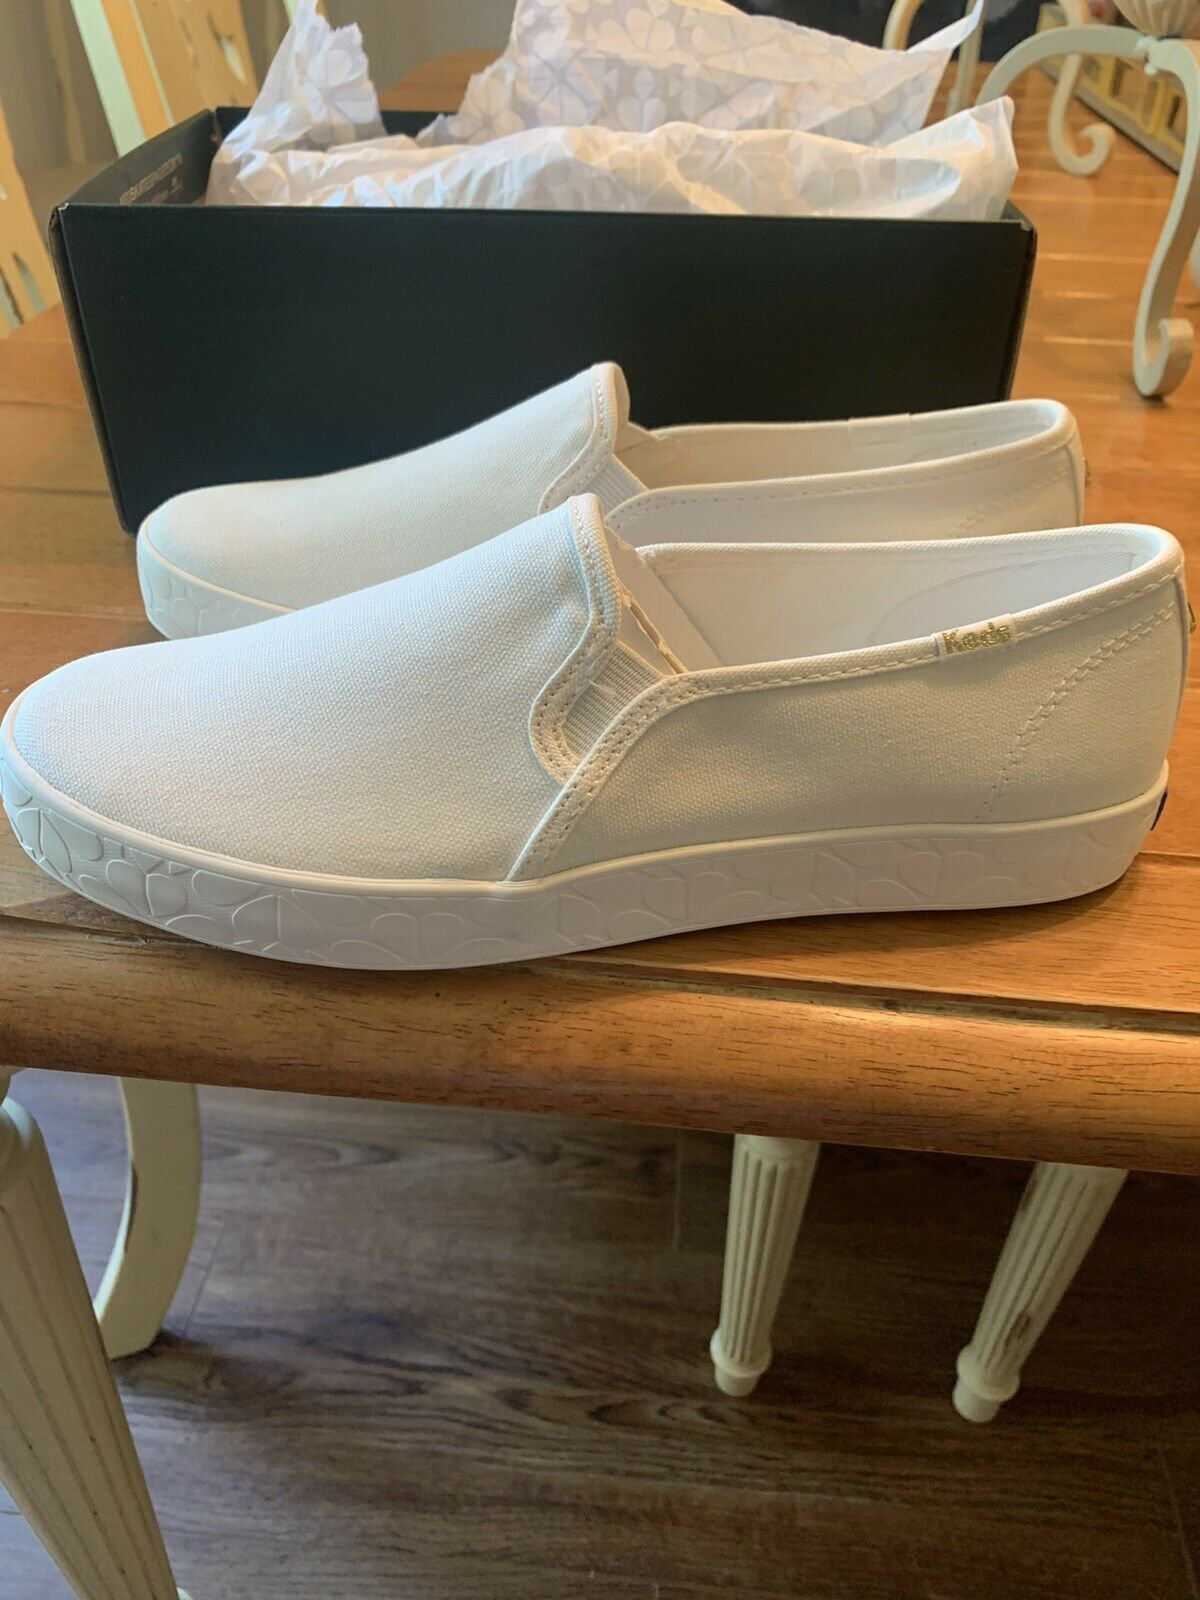 kate spade x platform white Shoes With Heart Soles